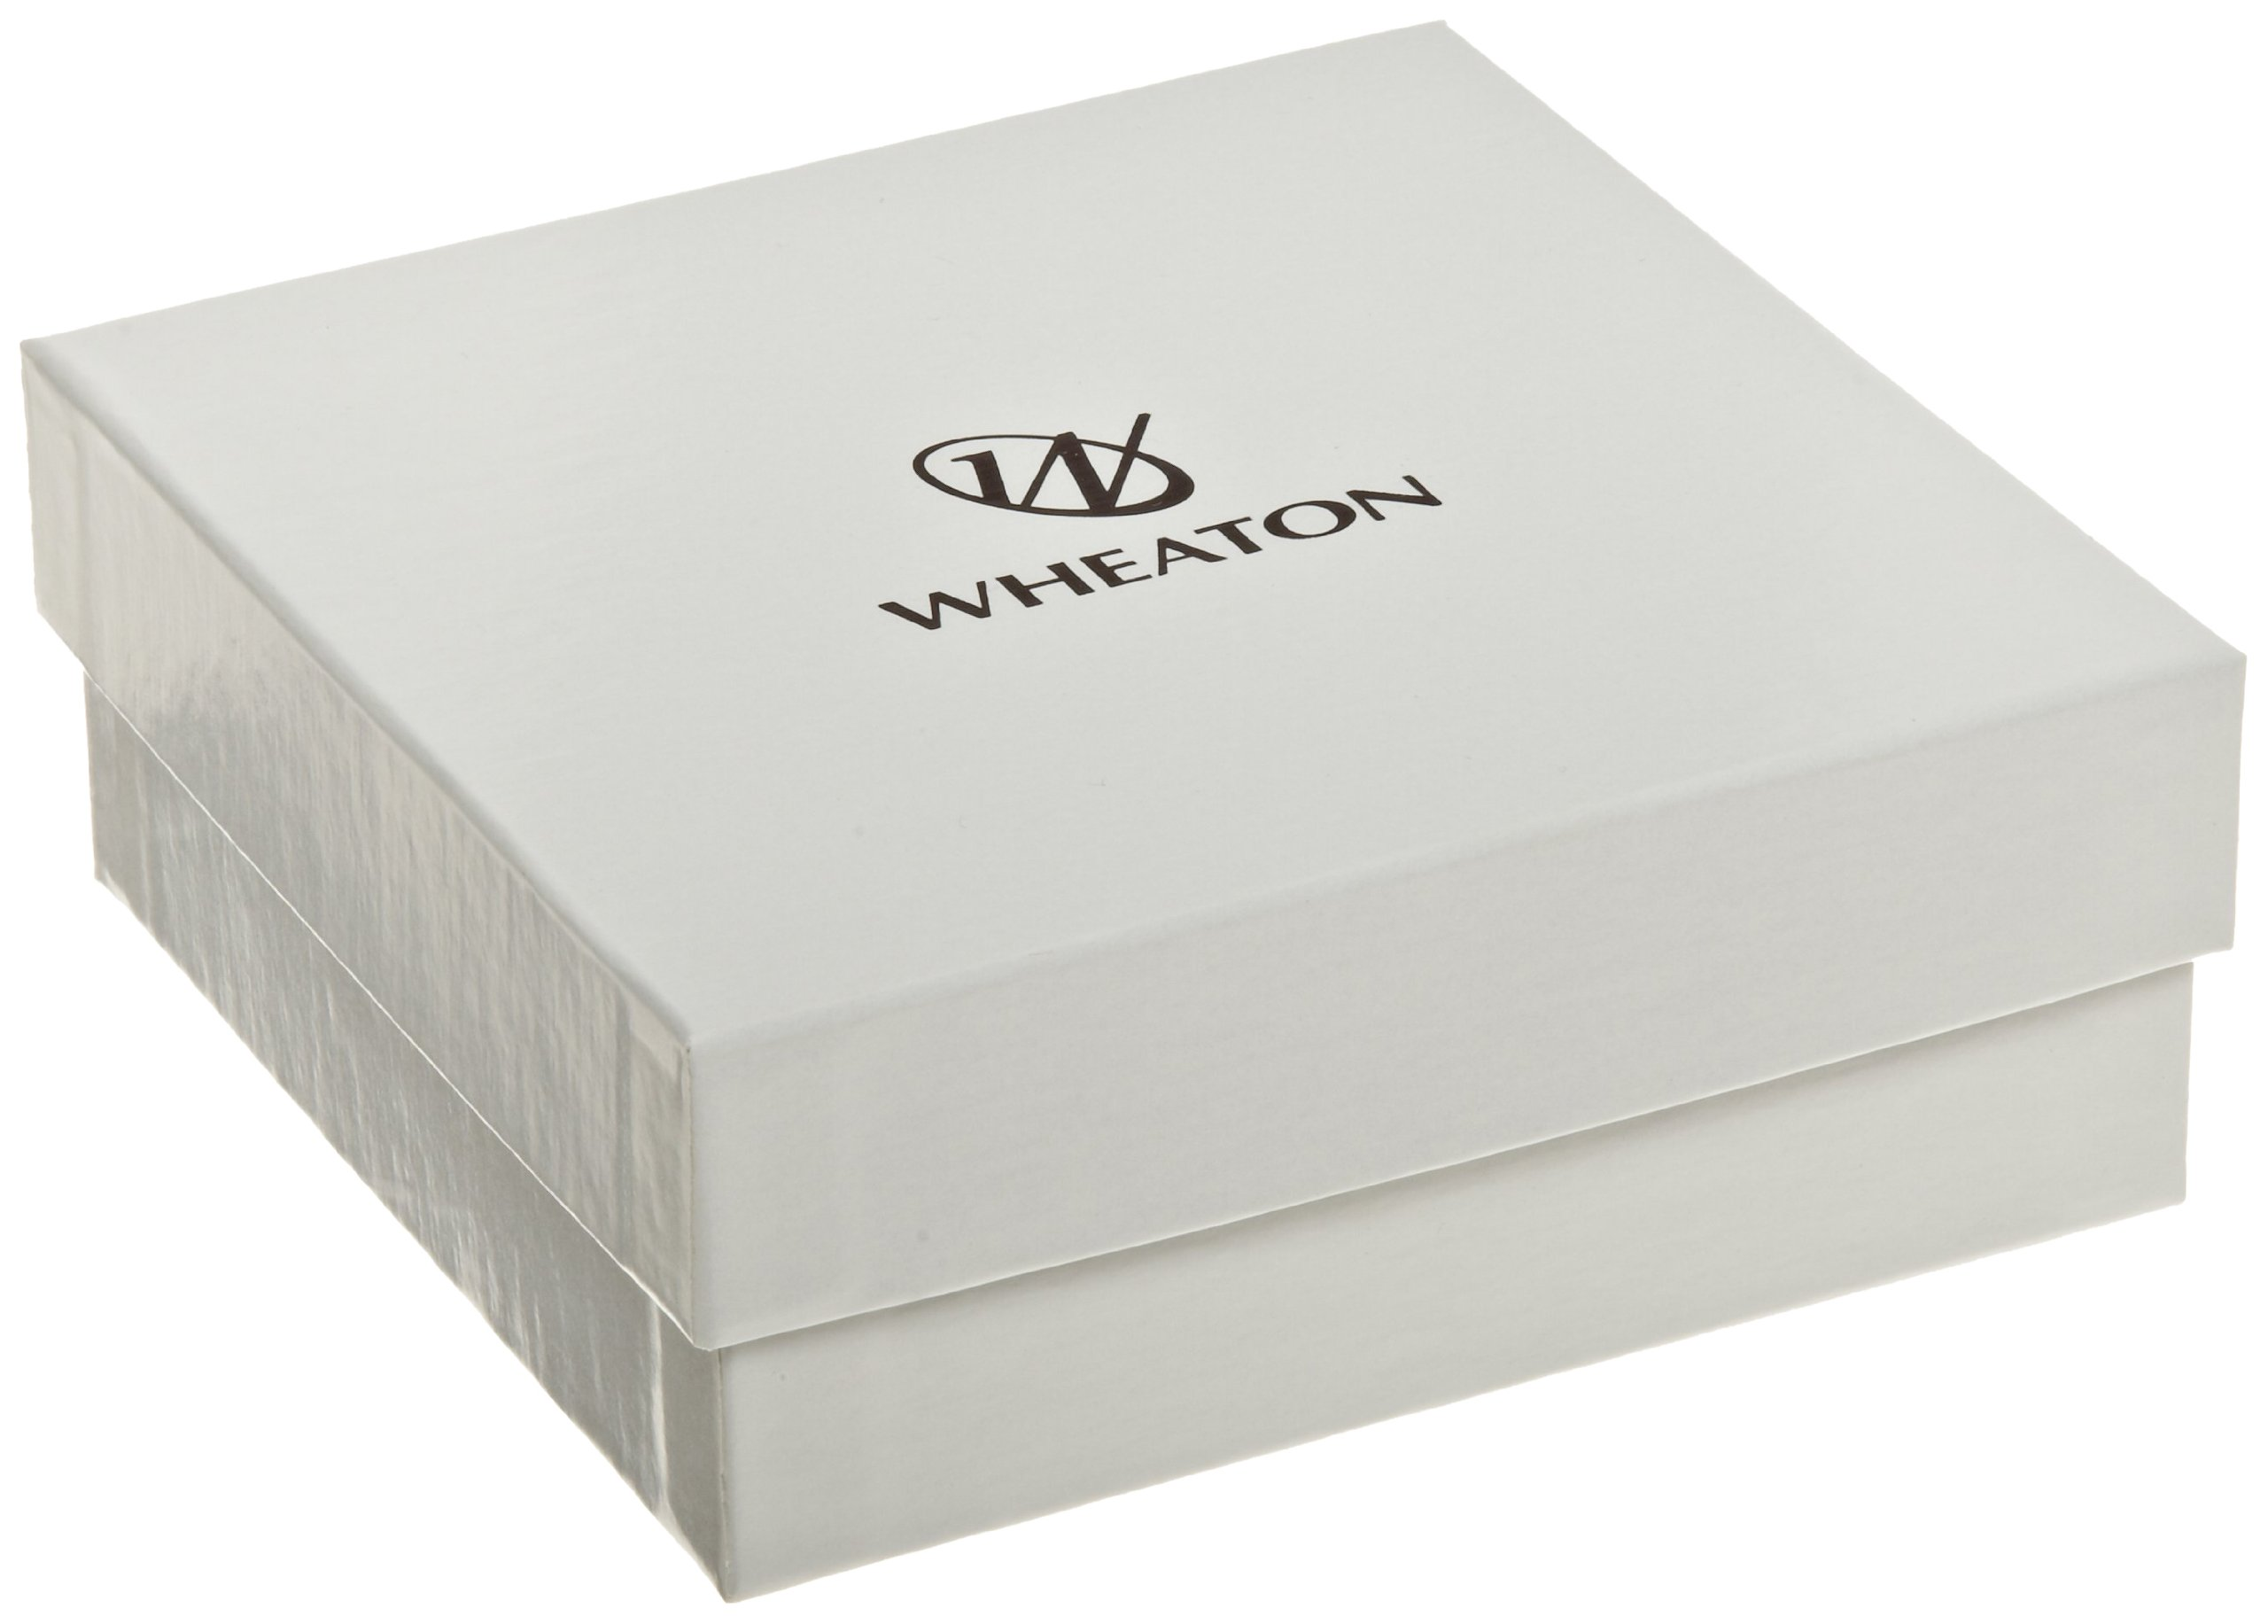 Wheaton W651603 White Chipboard CryoFile Storage Box, 130mm Length x 130mm Width x 52mm Height, For 2mL Cryogenic Vials (Case of 15)